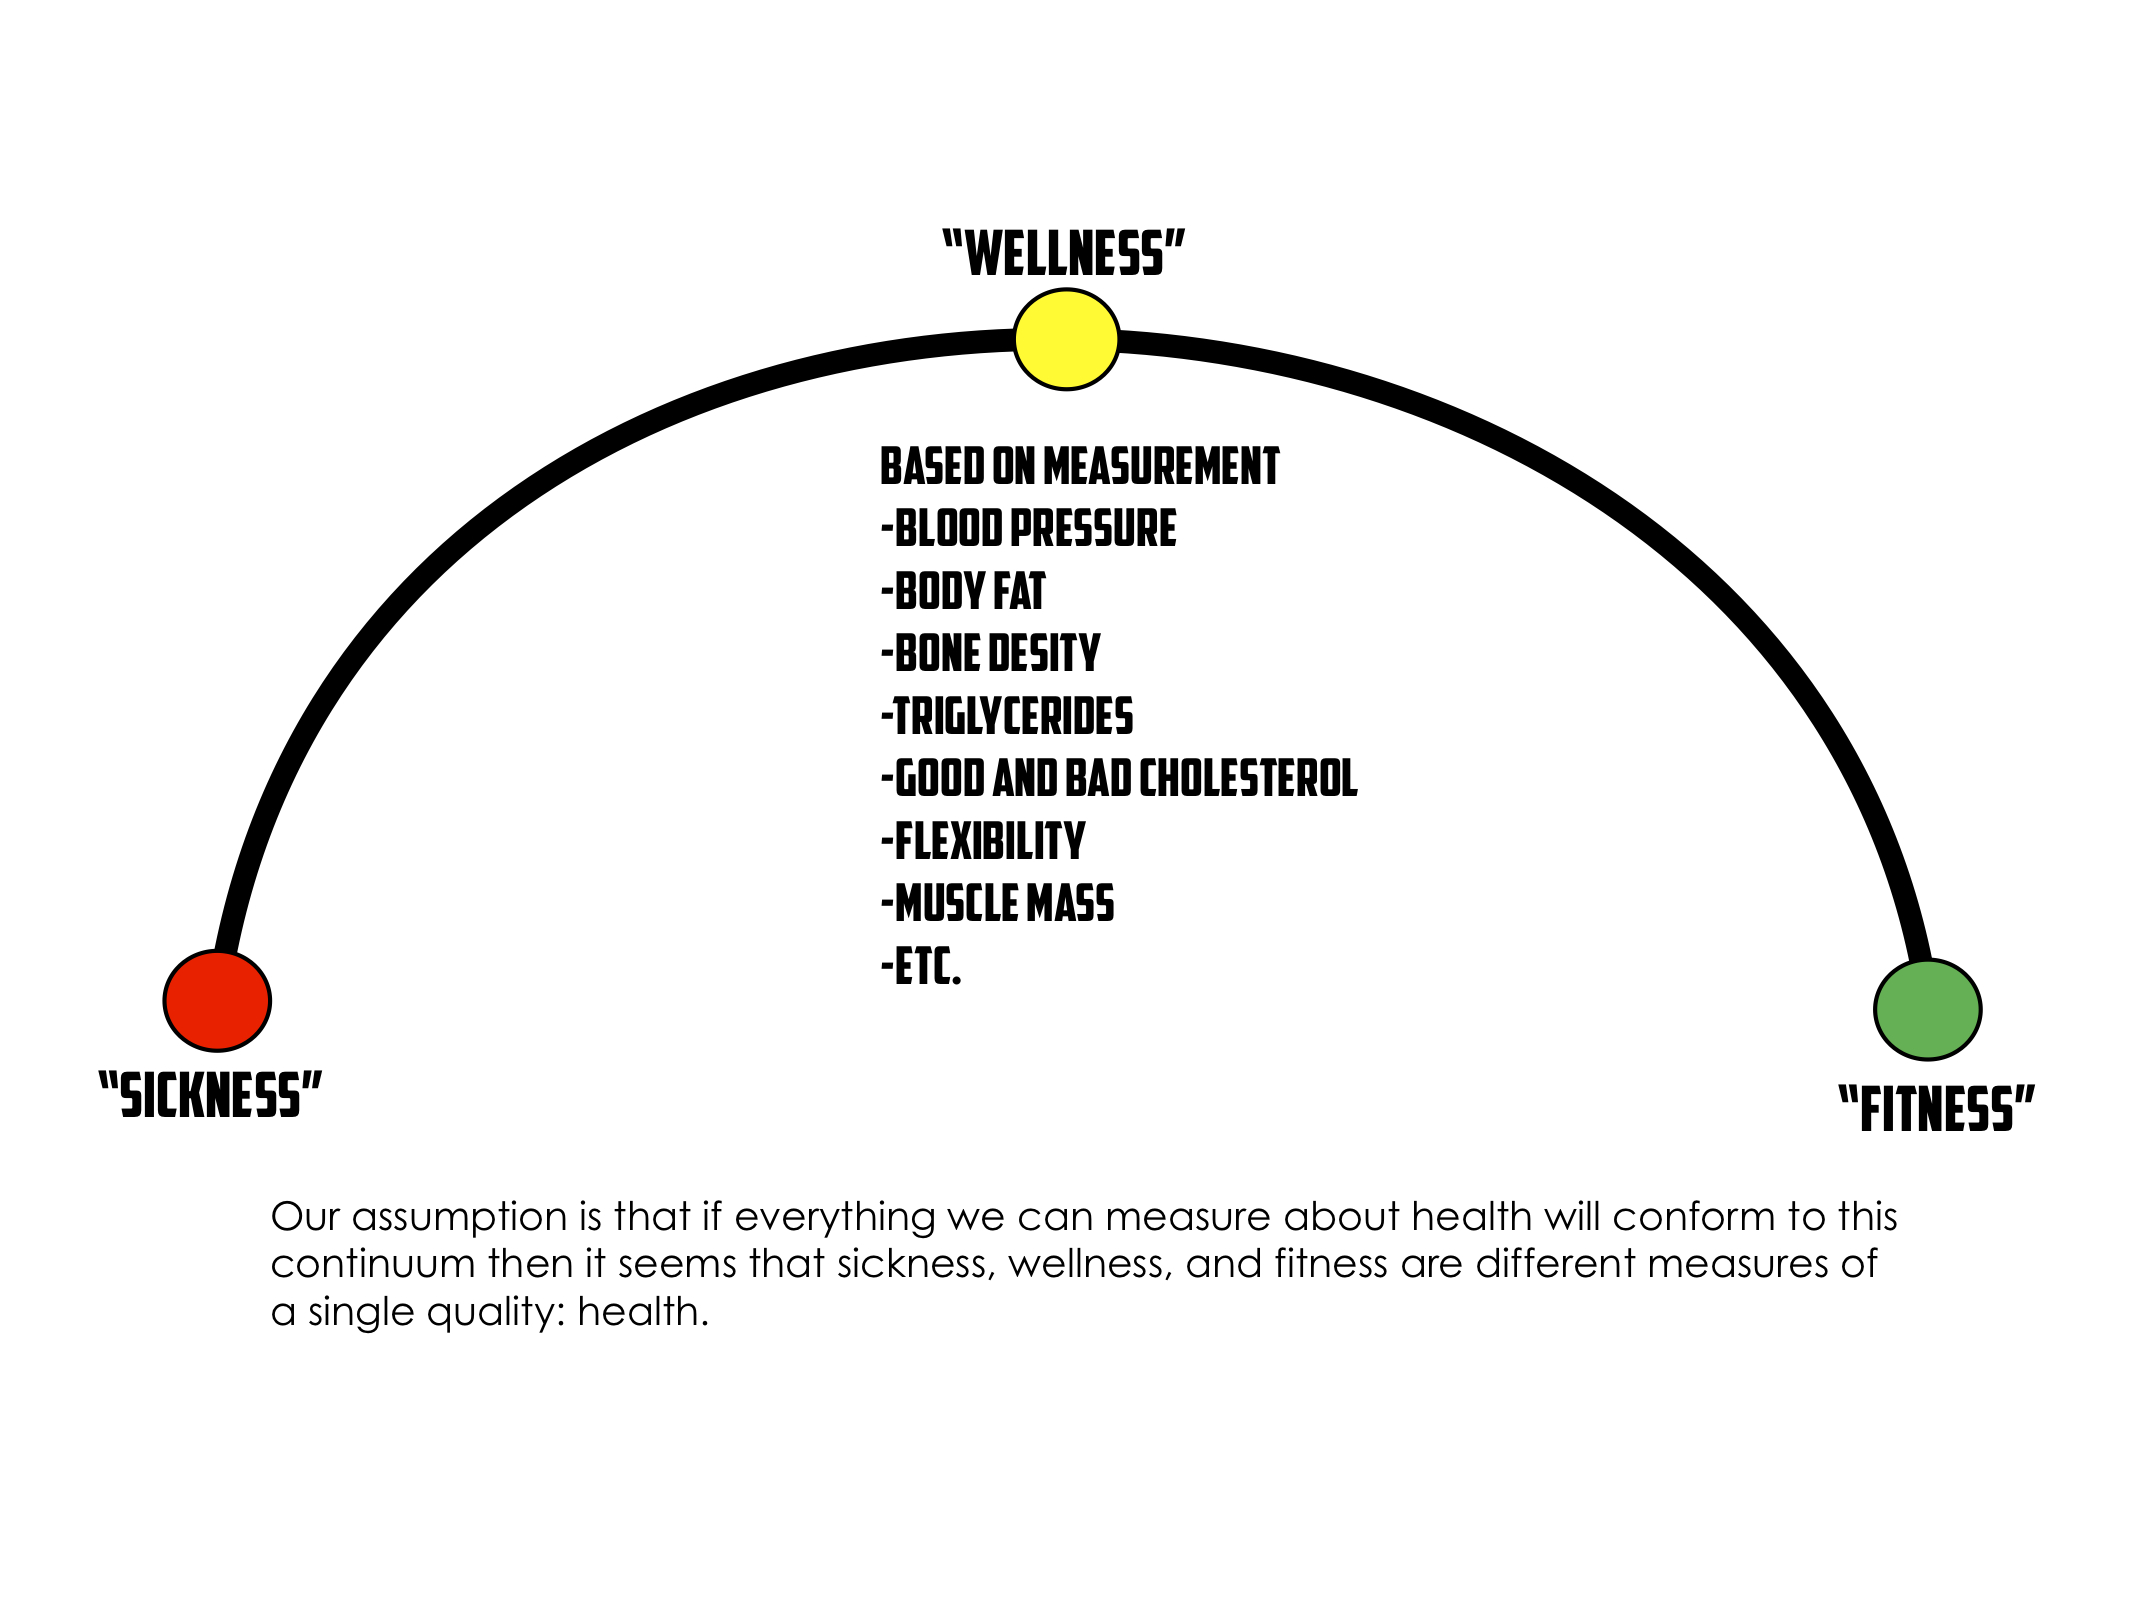 In a nutshell, the farther we get up the Fitness side on the Continuum the harder it is to kill us.